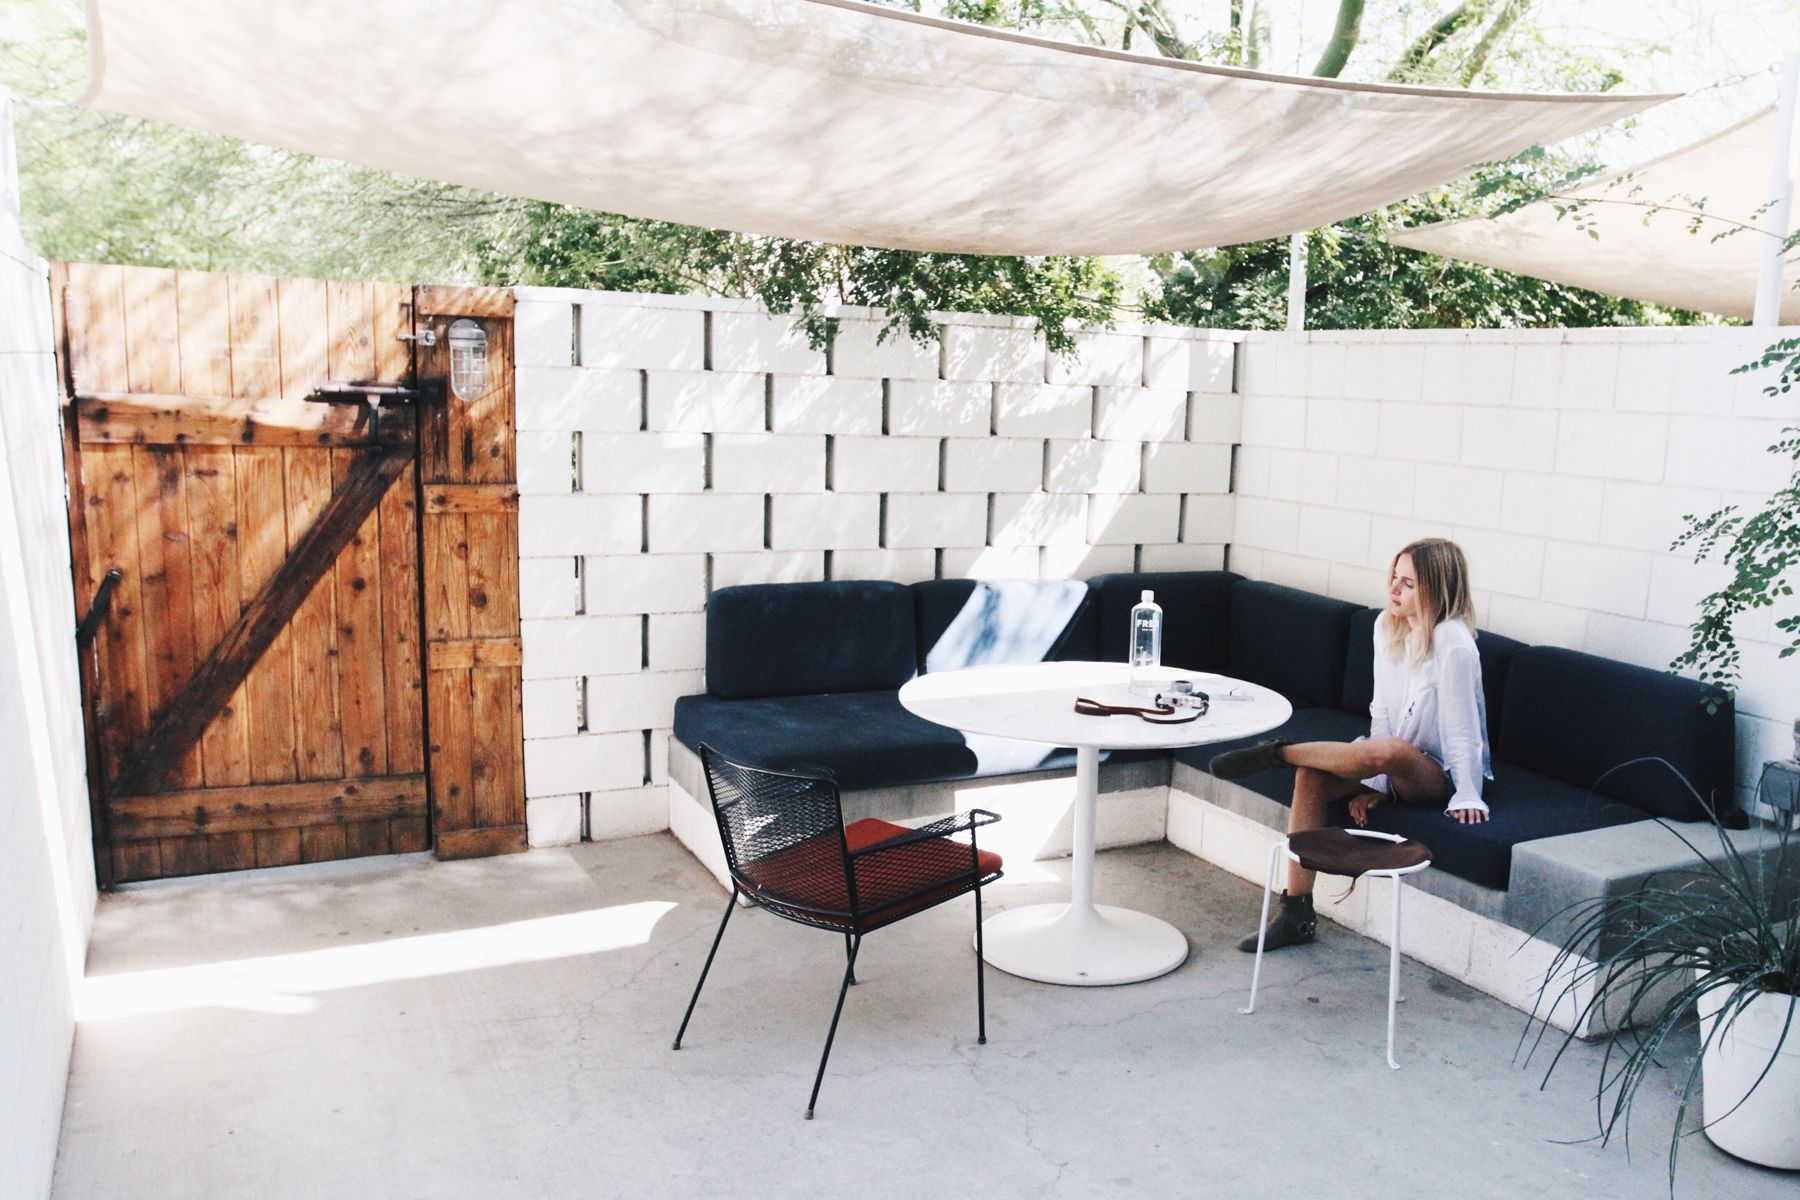 Patio Ace Hotel Palm Springs Via Mija Mija Pinterest